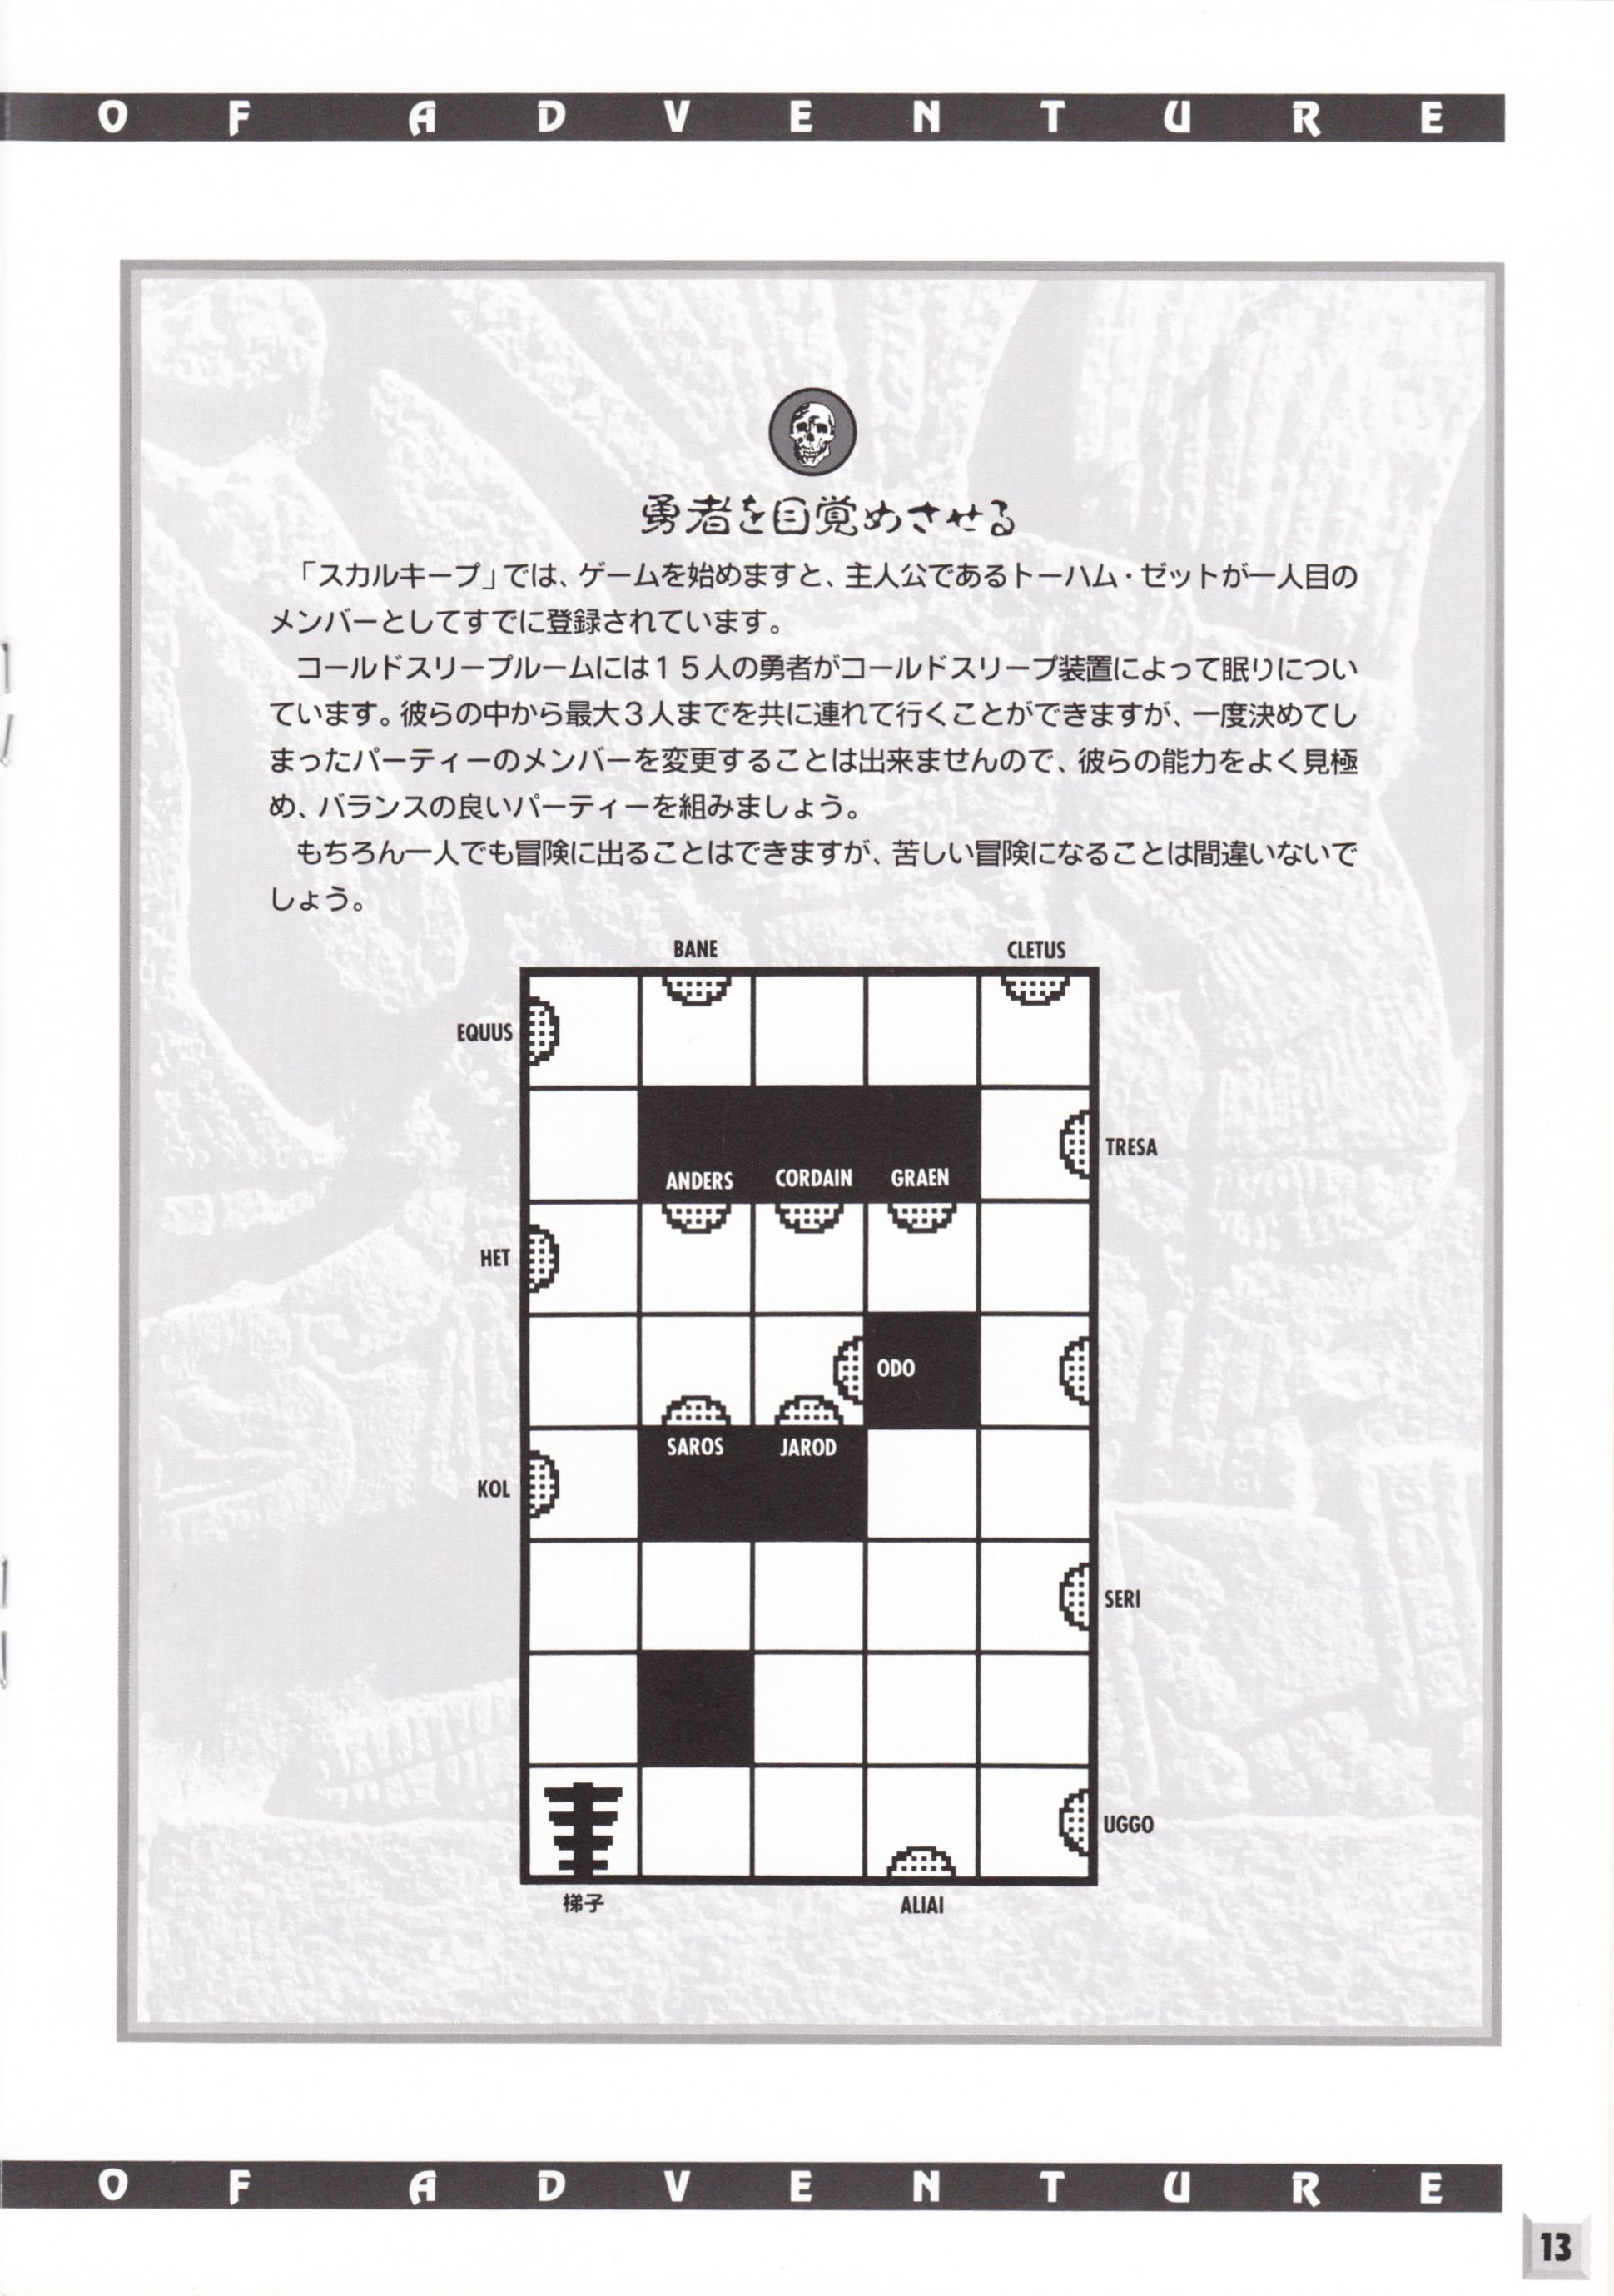 Game - Dungeon Master II - JP - PC-9801 - 3.5-inch - The Guidance Of Adventure - Page 015 - Scan